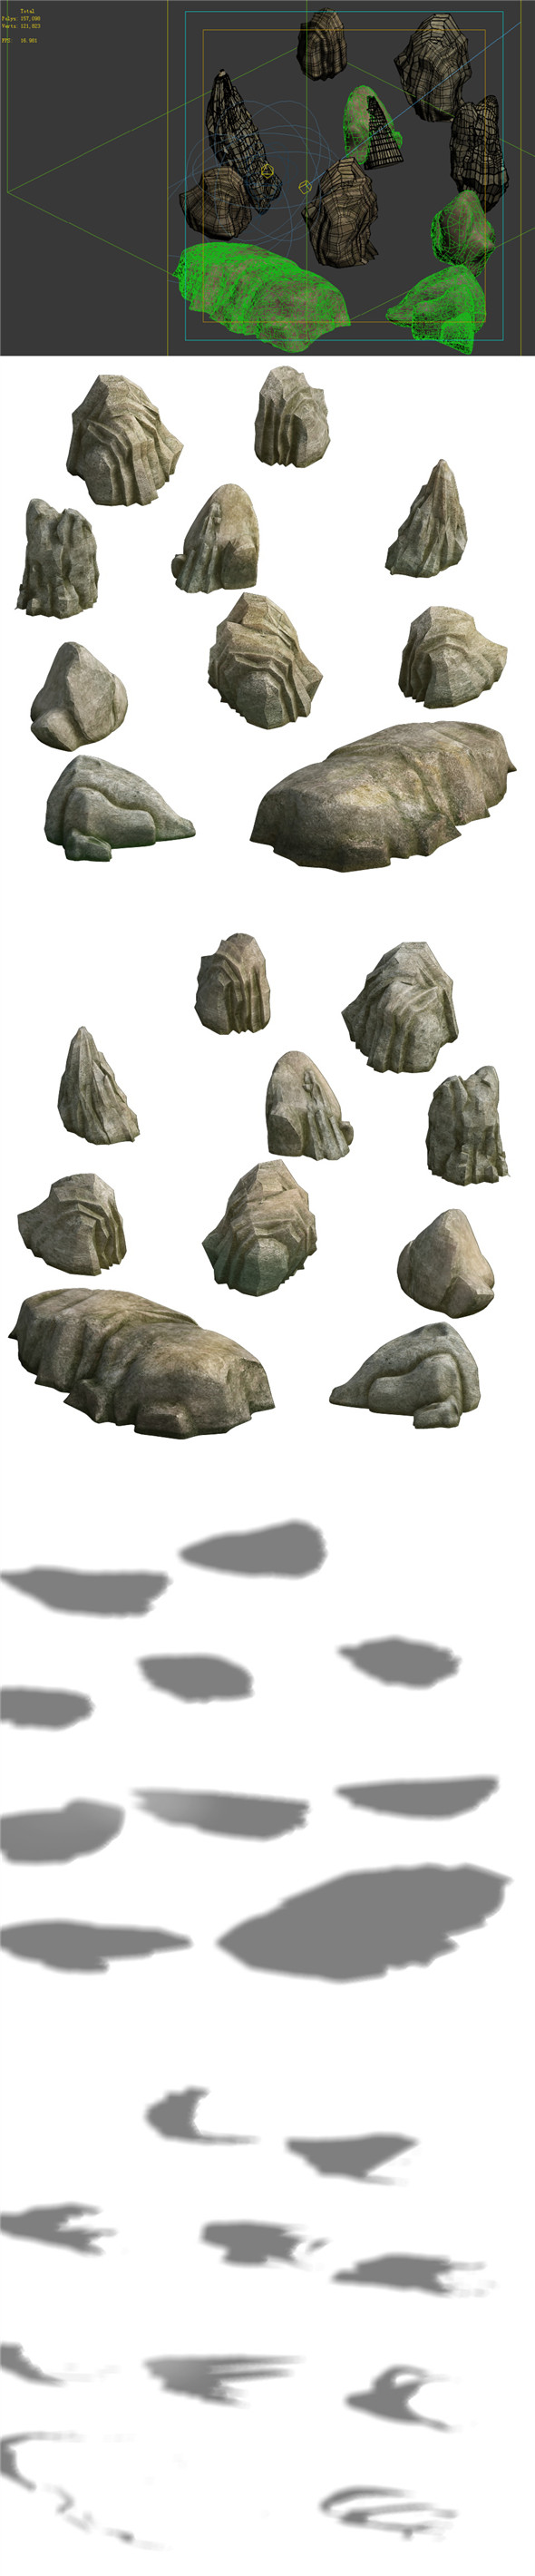 Game Model - Taoist comprehension Scene - small stones 01 - 3DOcean Item for Sale